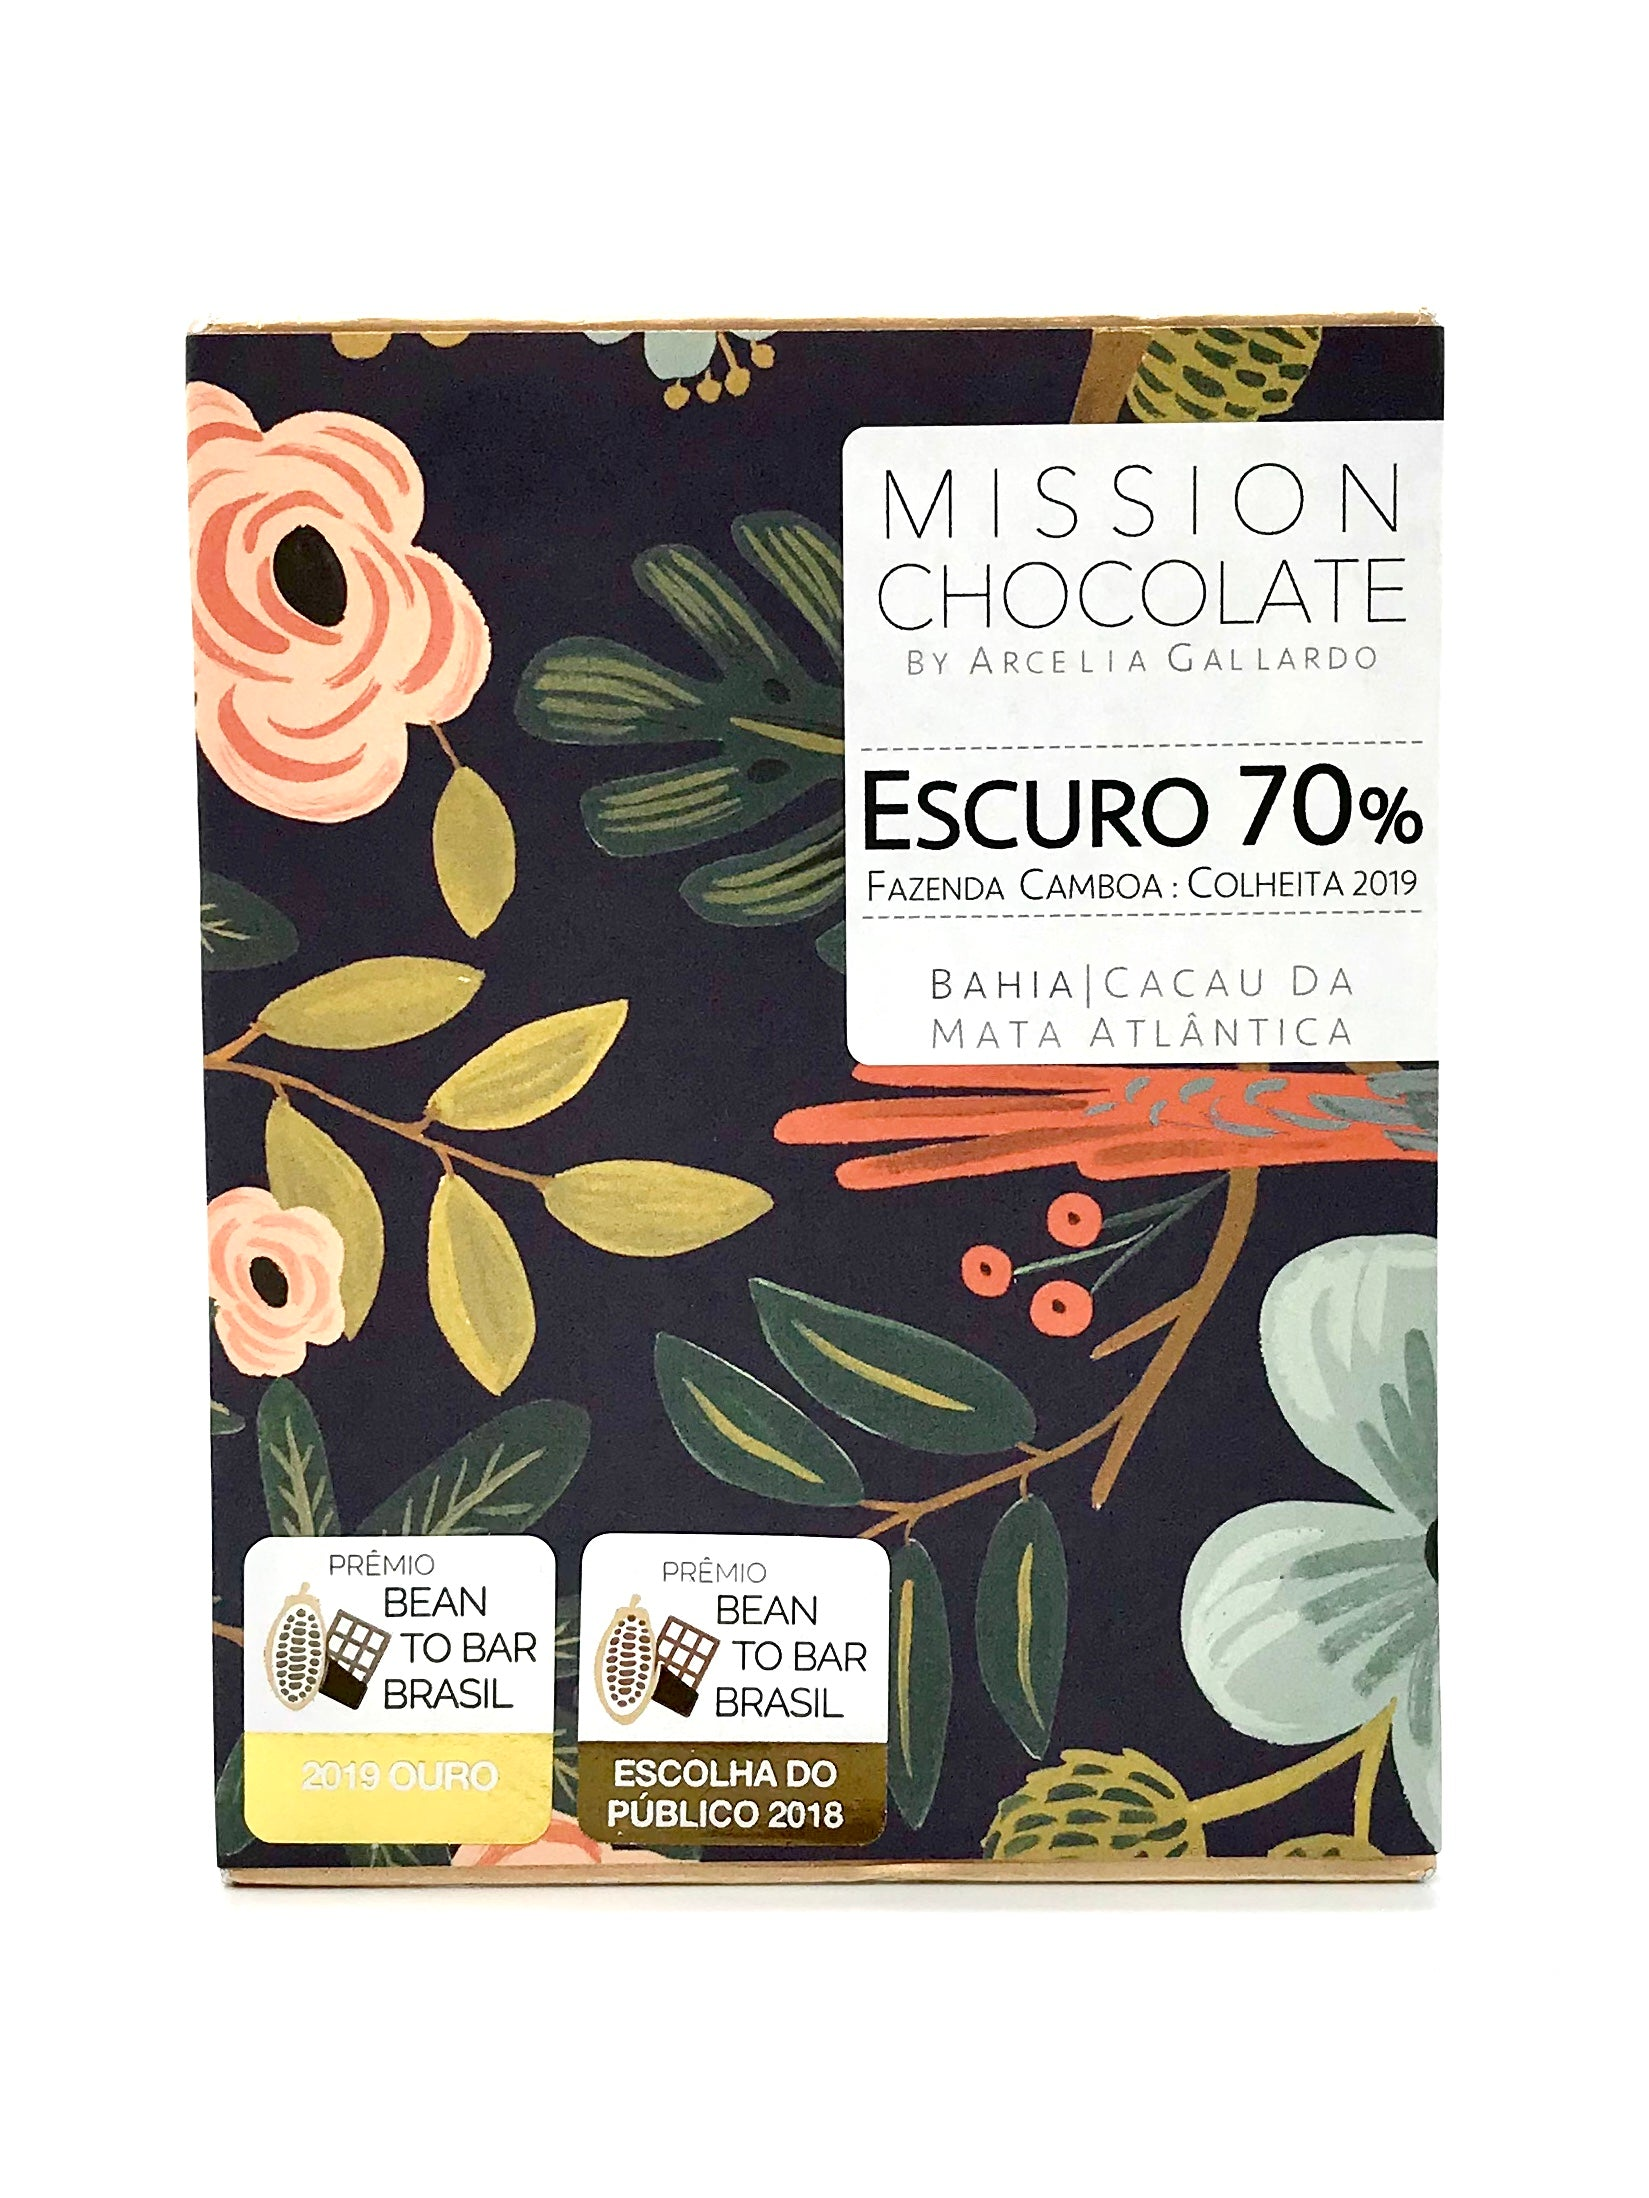 barra de chocolate escuro 70%